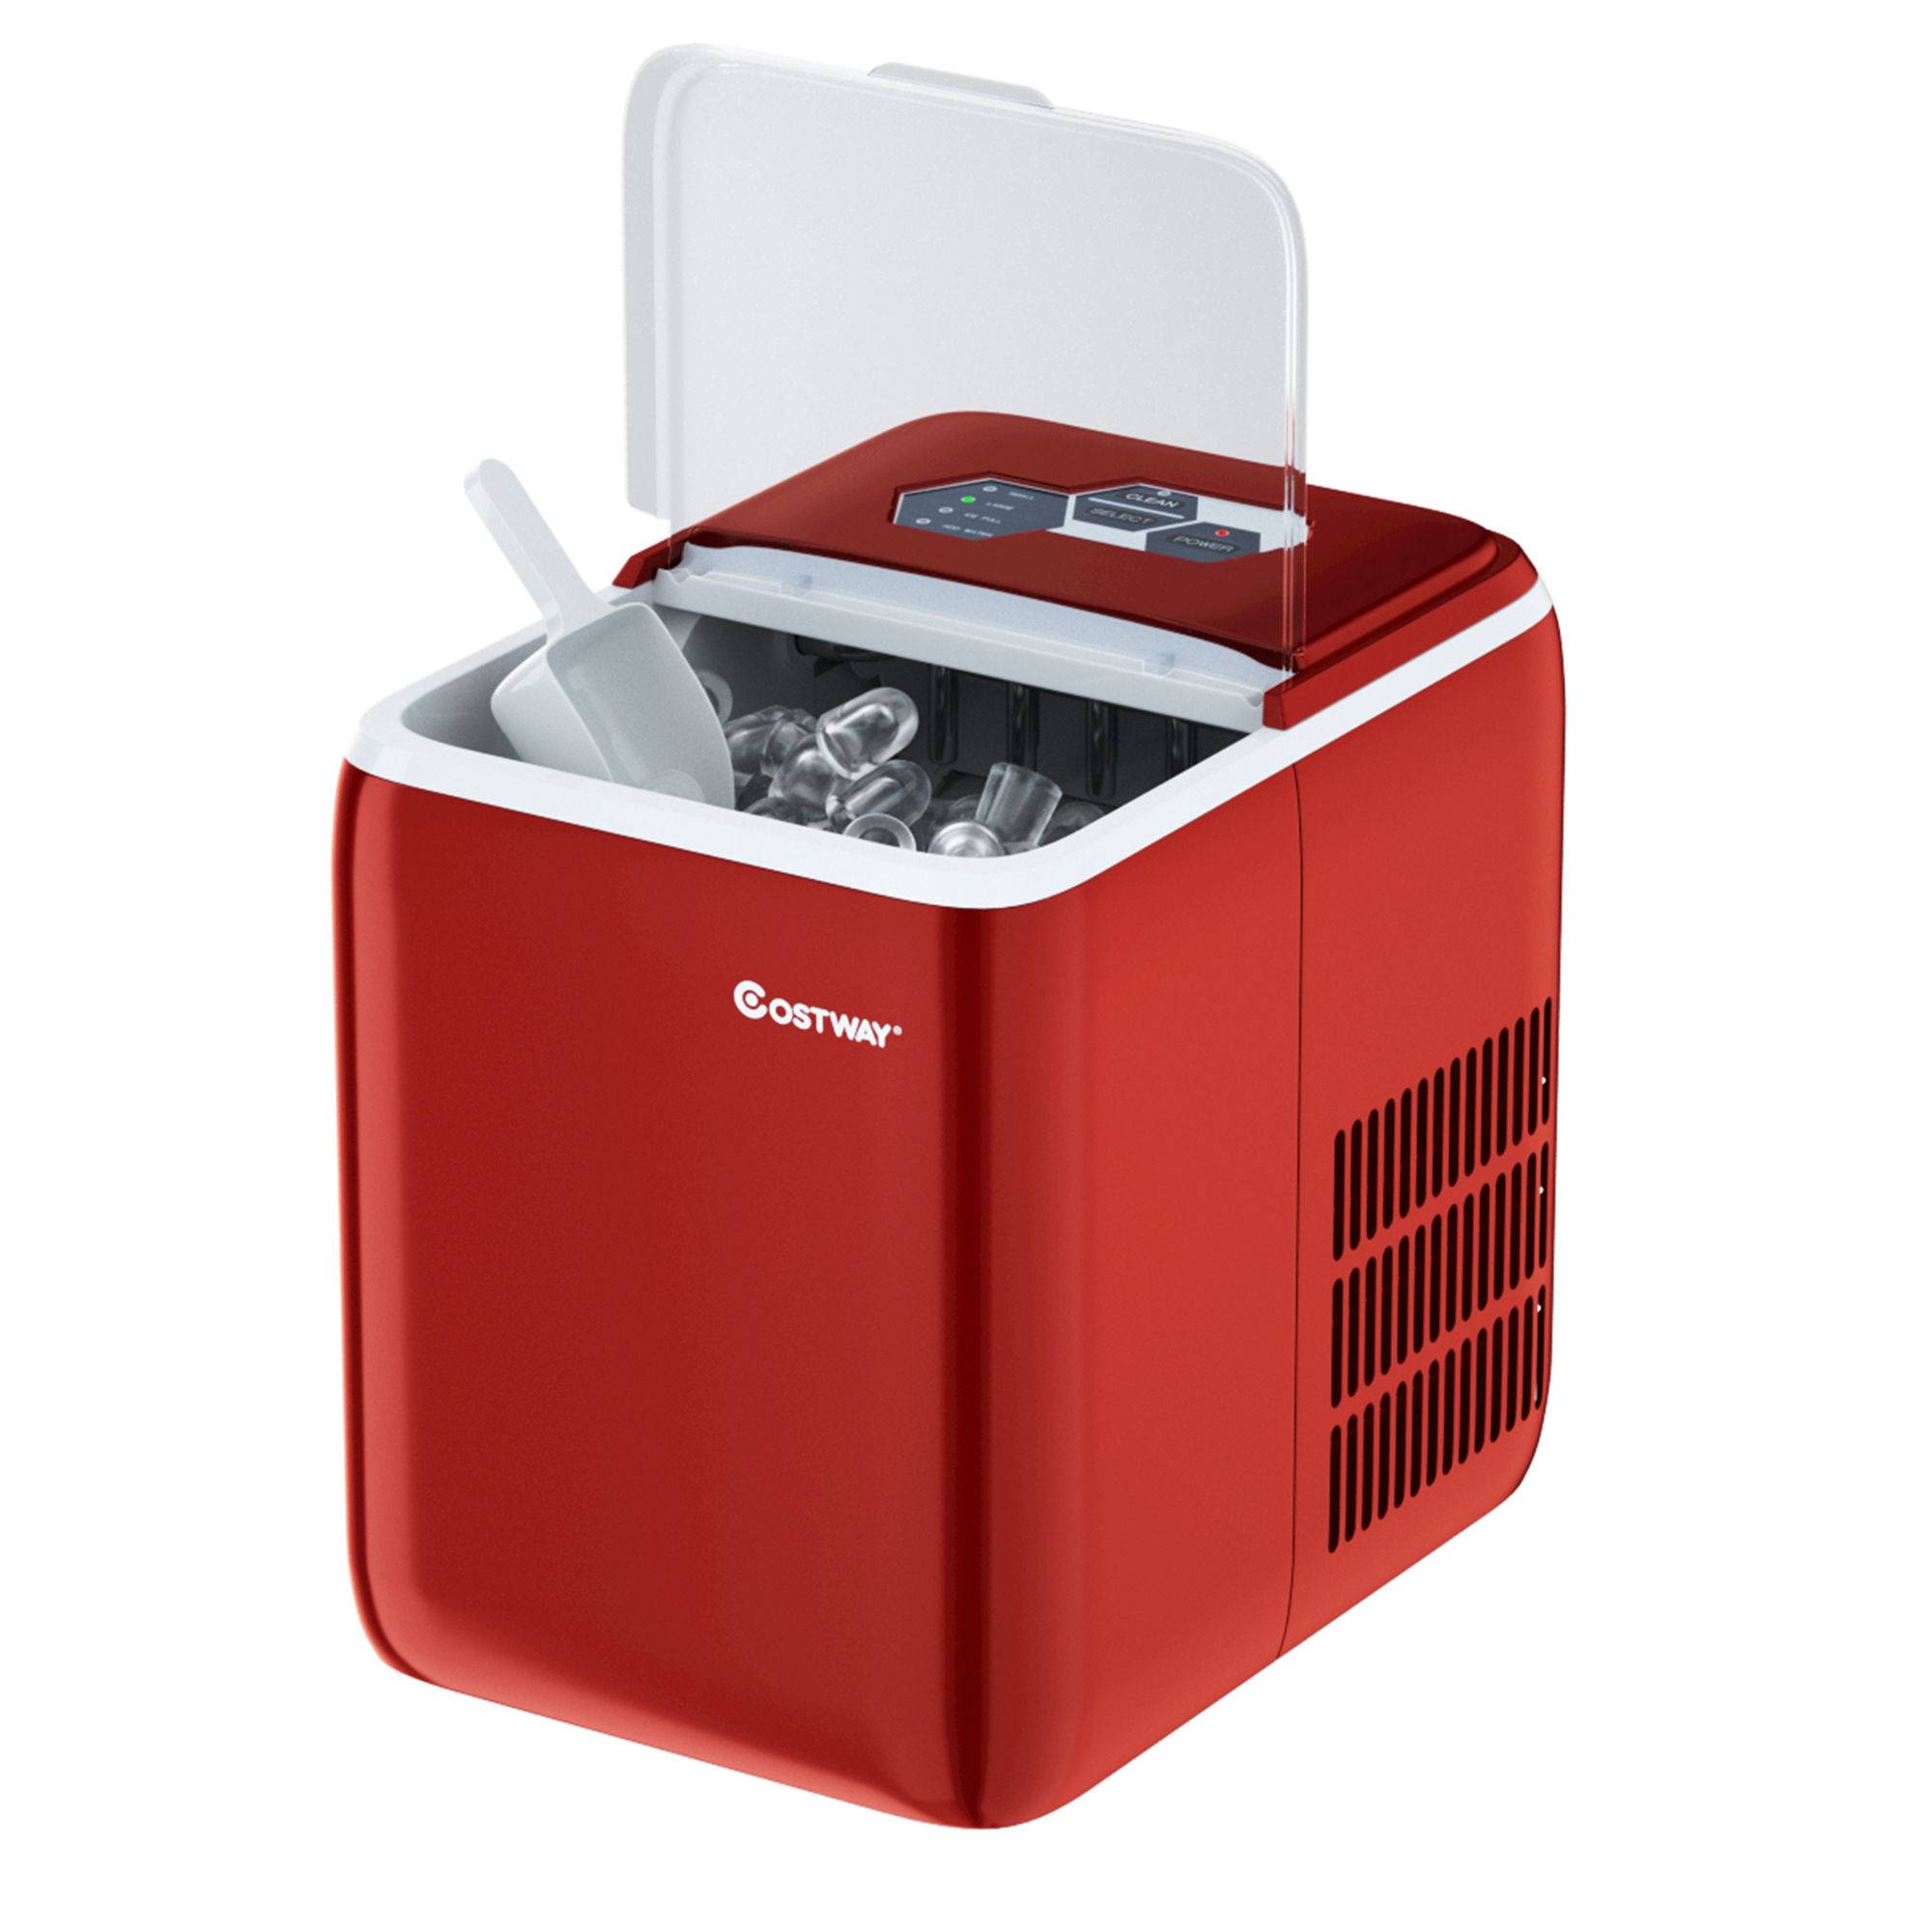 Costway Portable Countertop Ice Maker Machine 44lbs 24h Self Clean W Scoop Silverblackrednavy Walmart Com Walmart Com